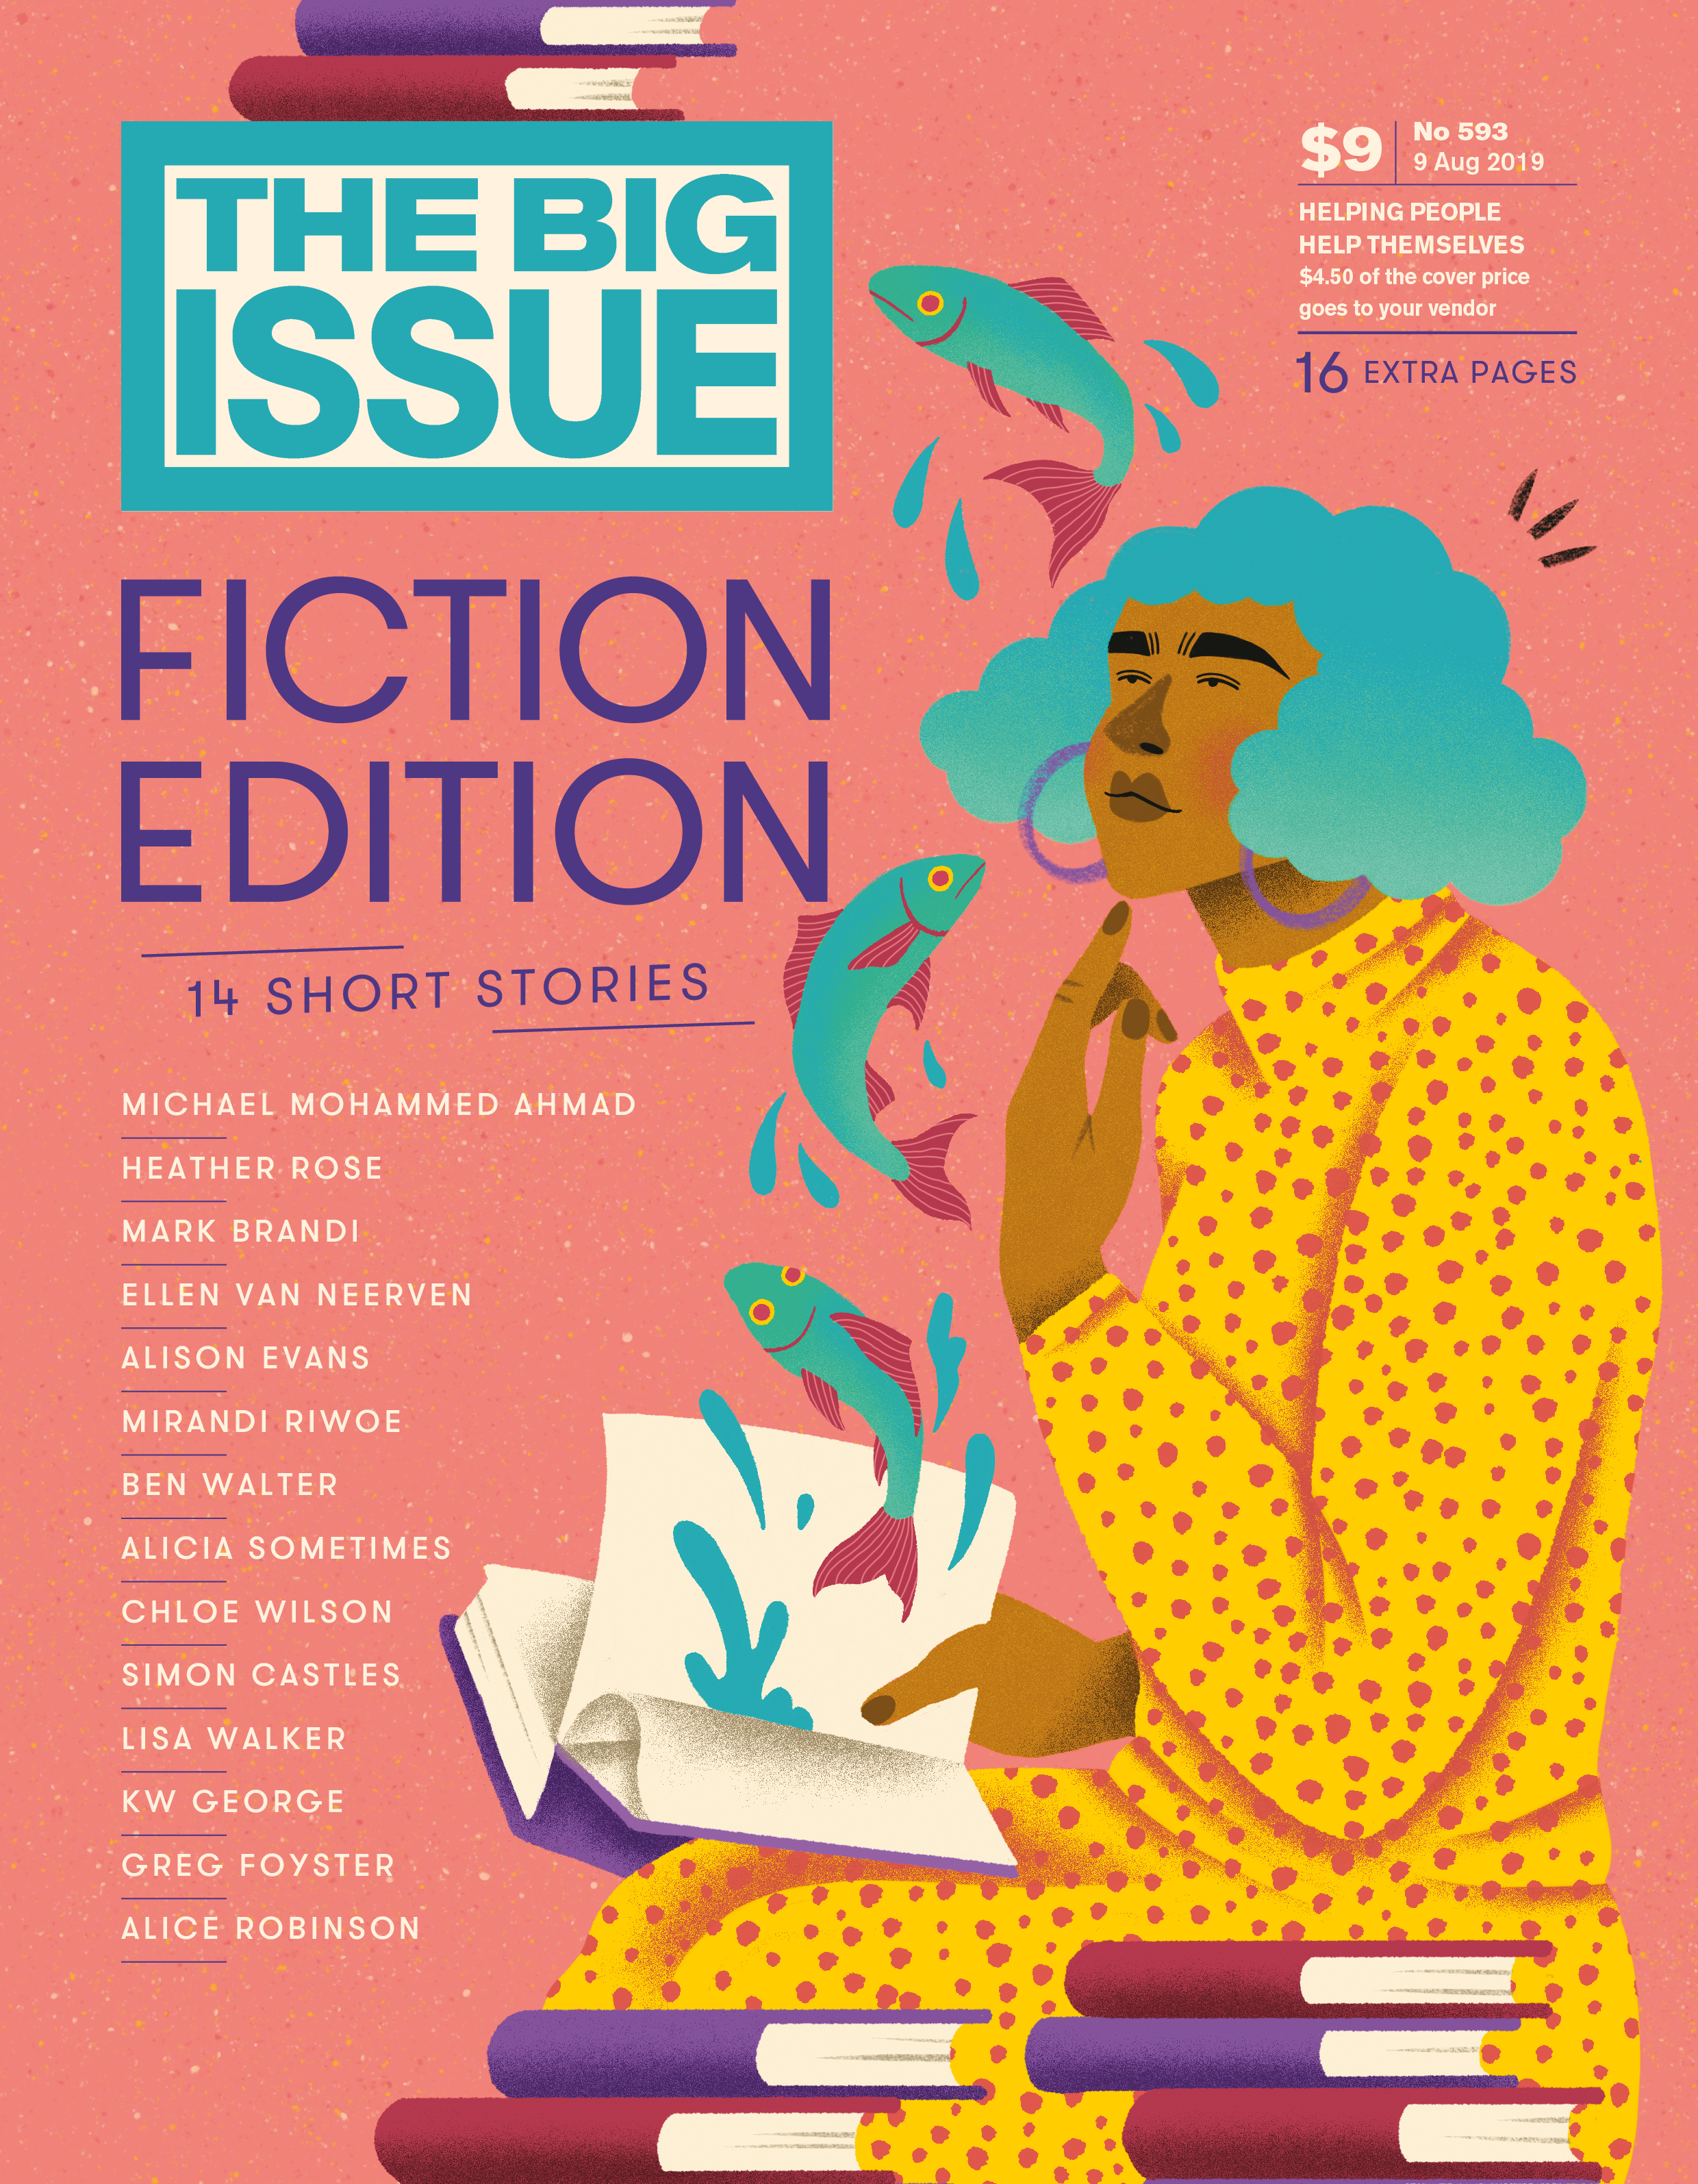 The Big Issue 2019 Fiction Edition Cover Art, featuring an illustration of a woman reading a book as fish jump out of it